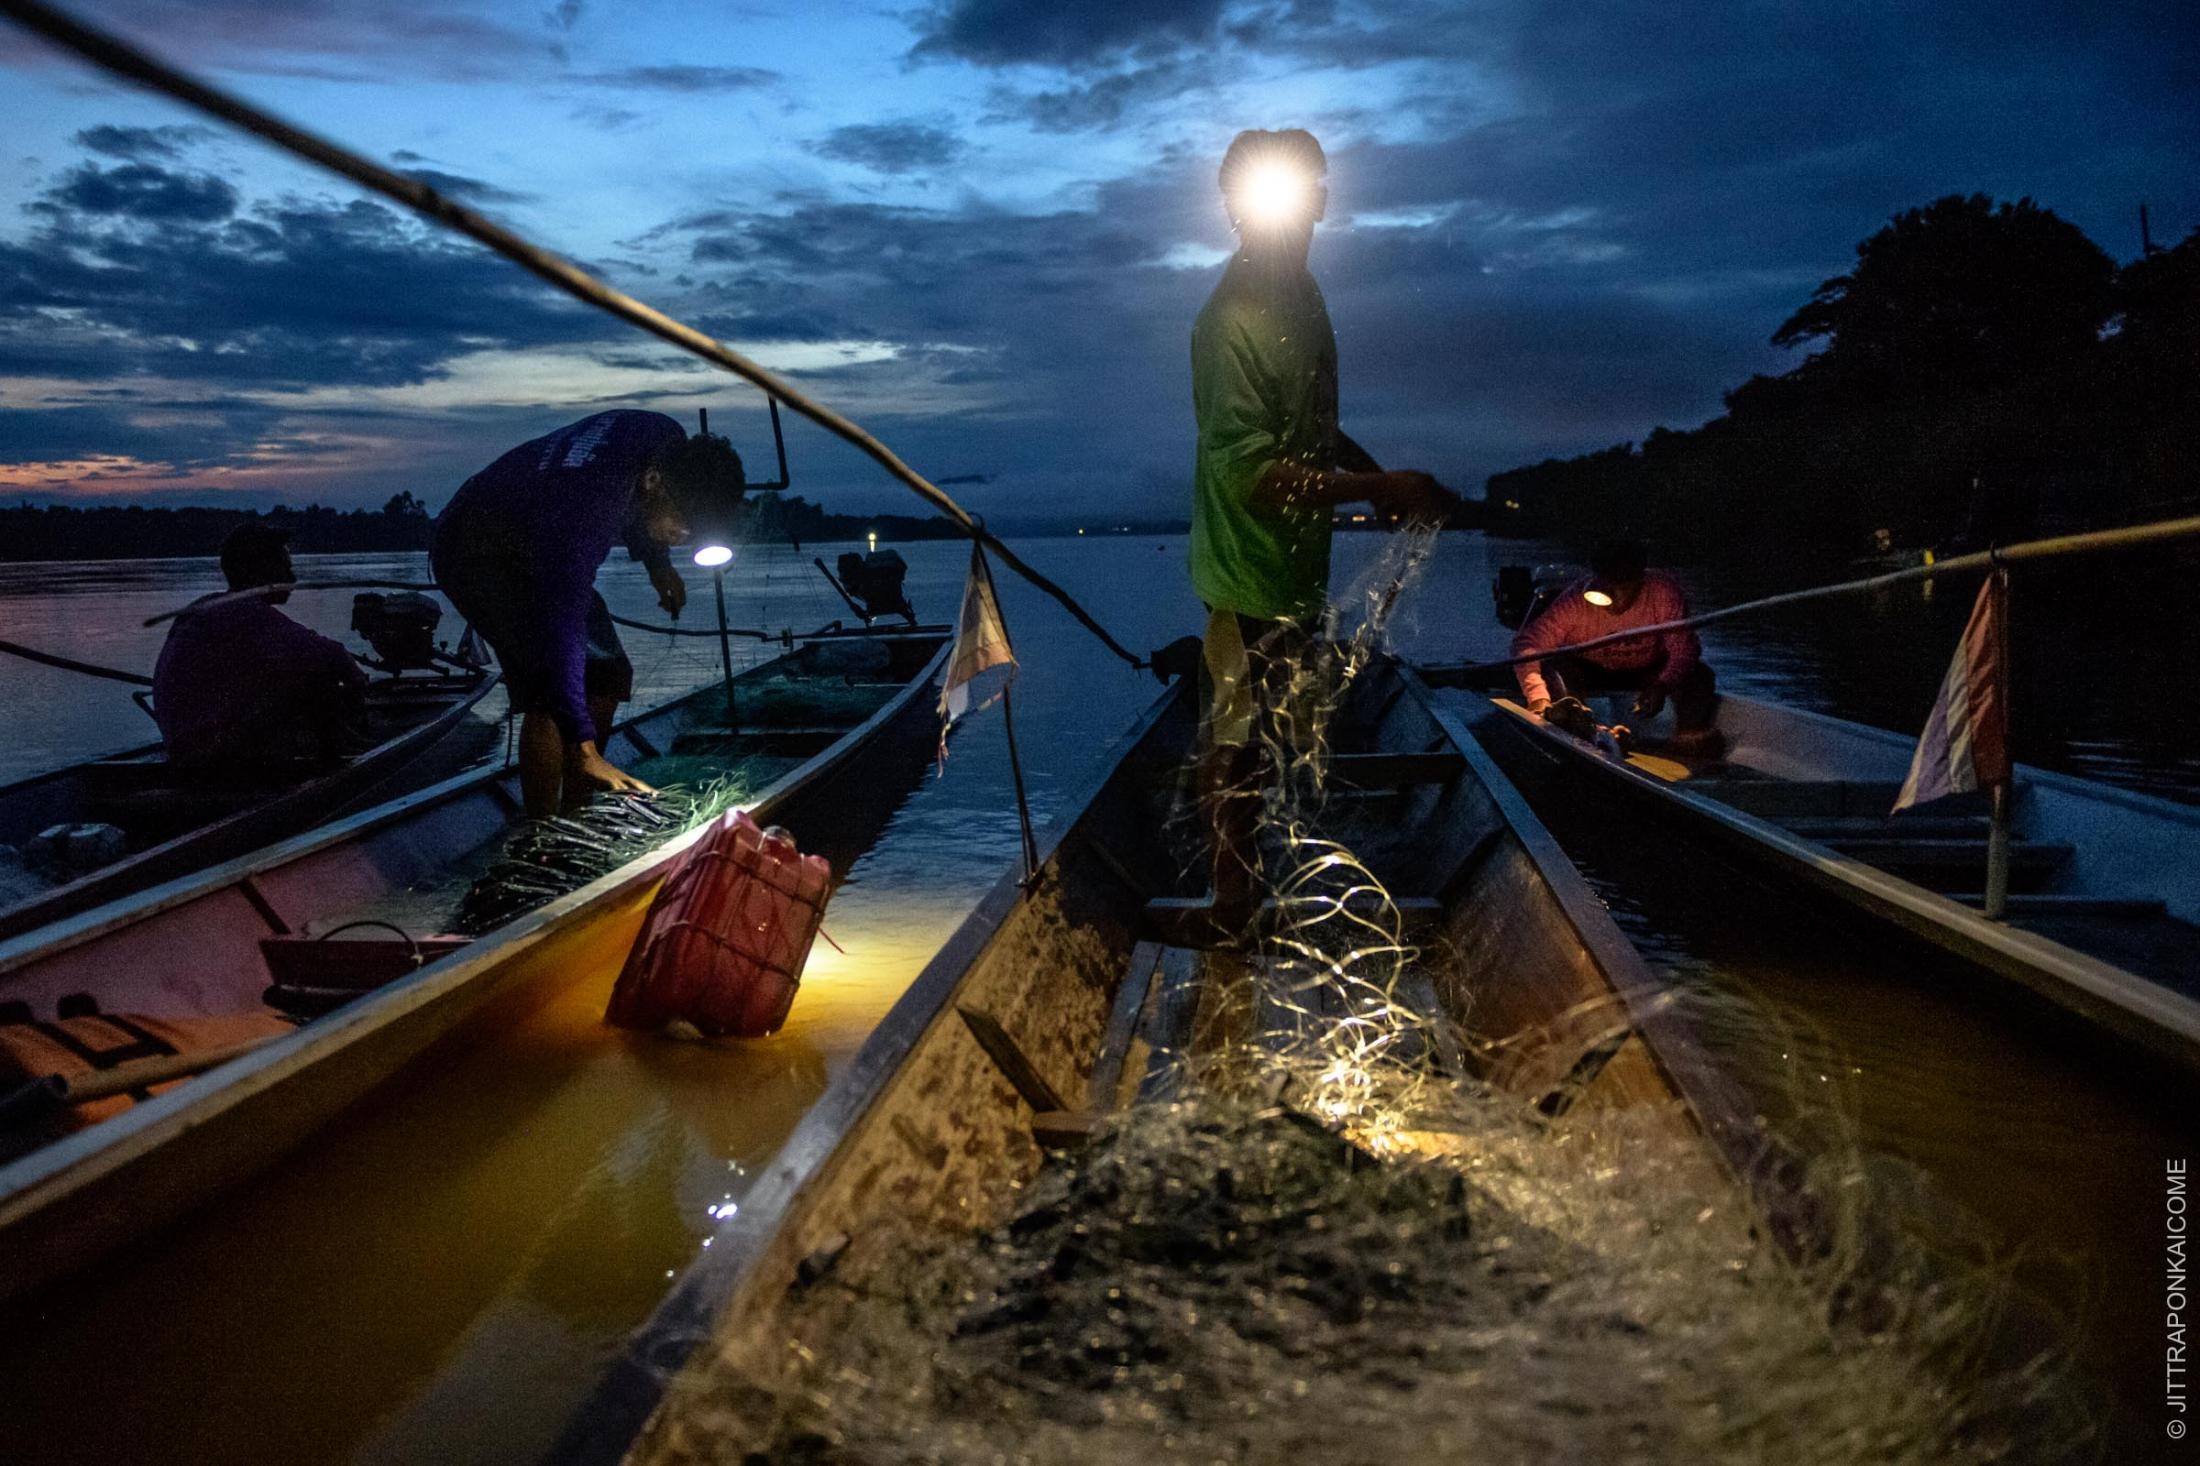 Fishers are preparing their nets in the small harbor, to catch fish at dawn amid fewer fish affected by unusual tidal resulted by Dams upper stream. In Loei, Thailand – August 2020.